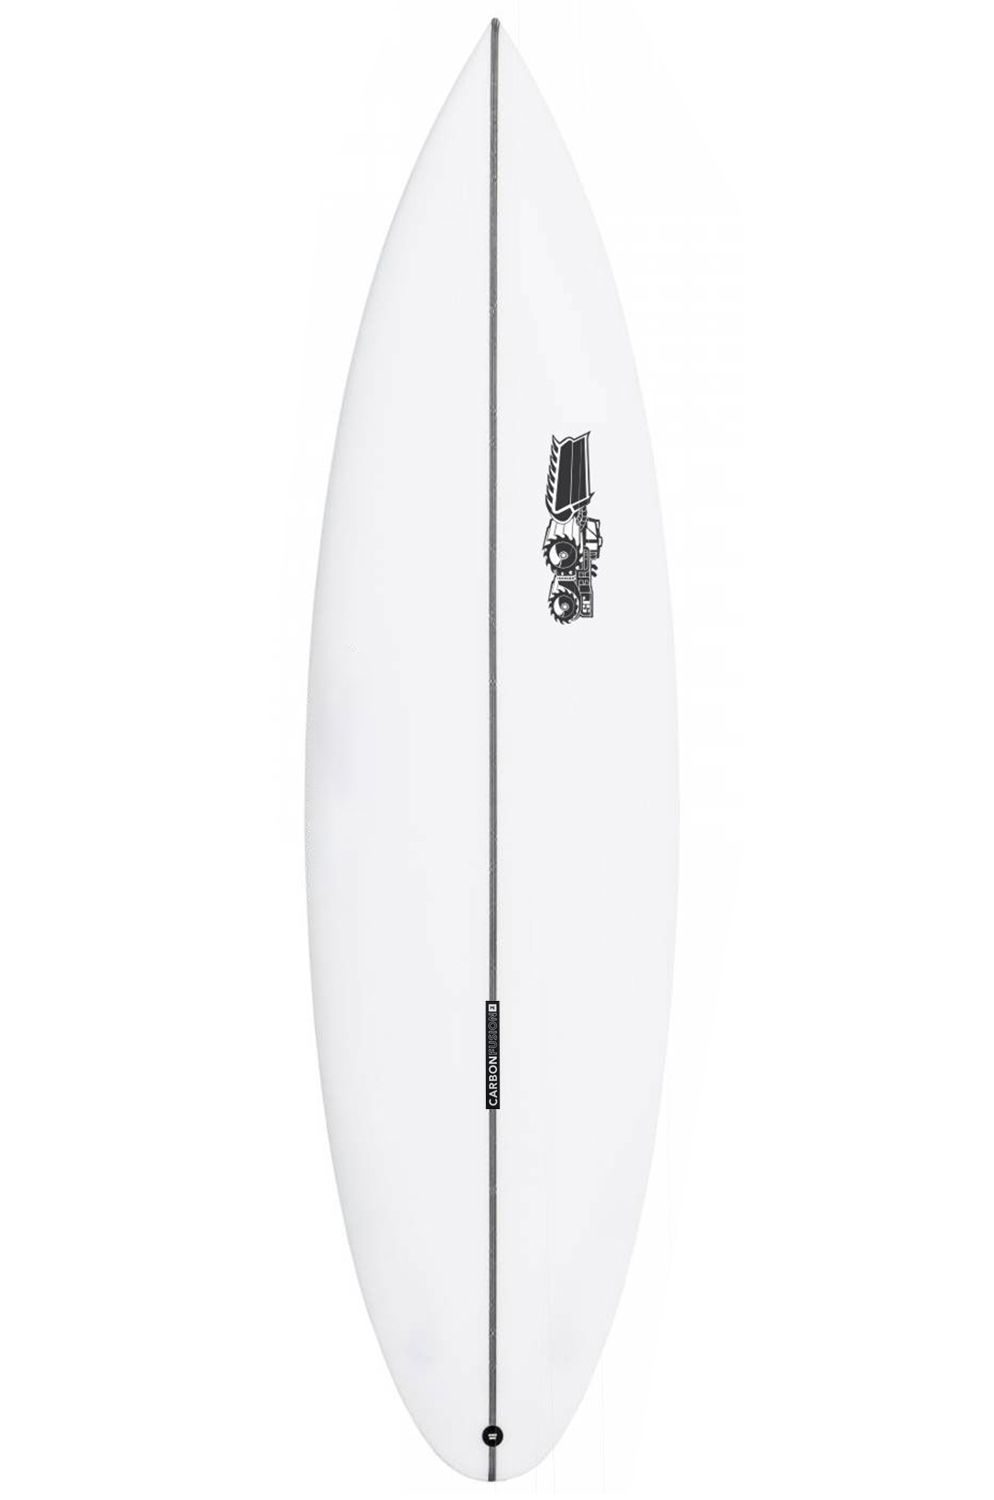 JS Surf Board 5'11 MONSTA 2020 PERFORMANCE PE Round Pin Tail - White FCS II Multisystem 5ft11